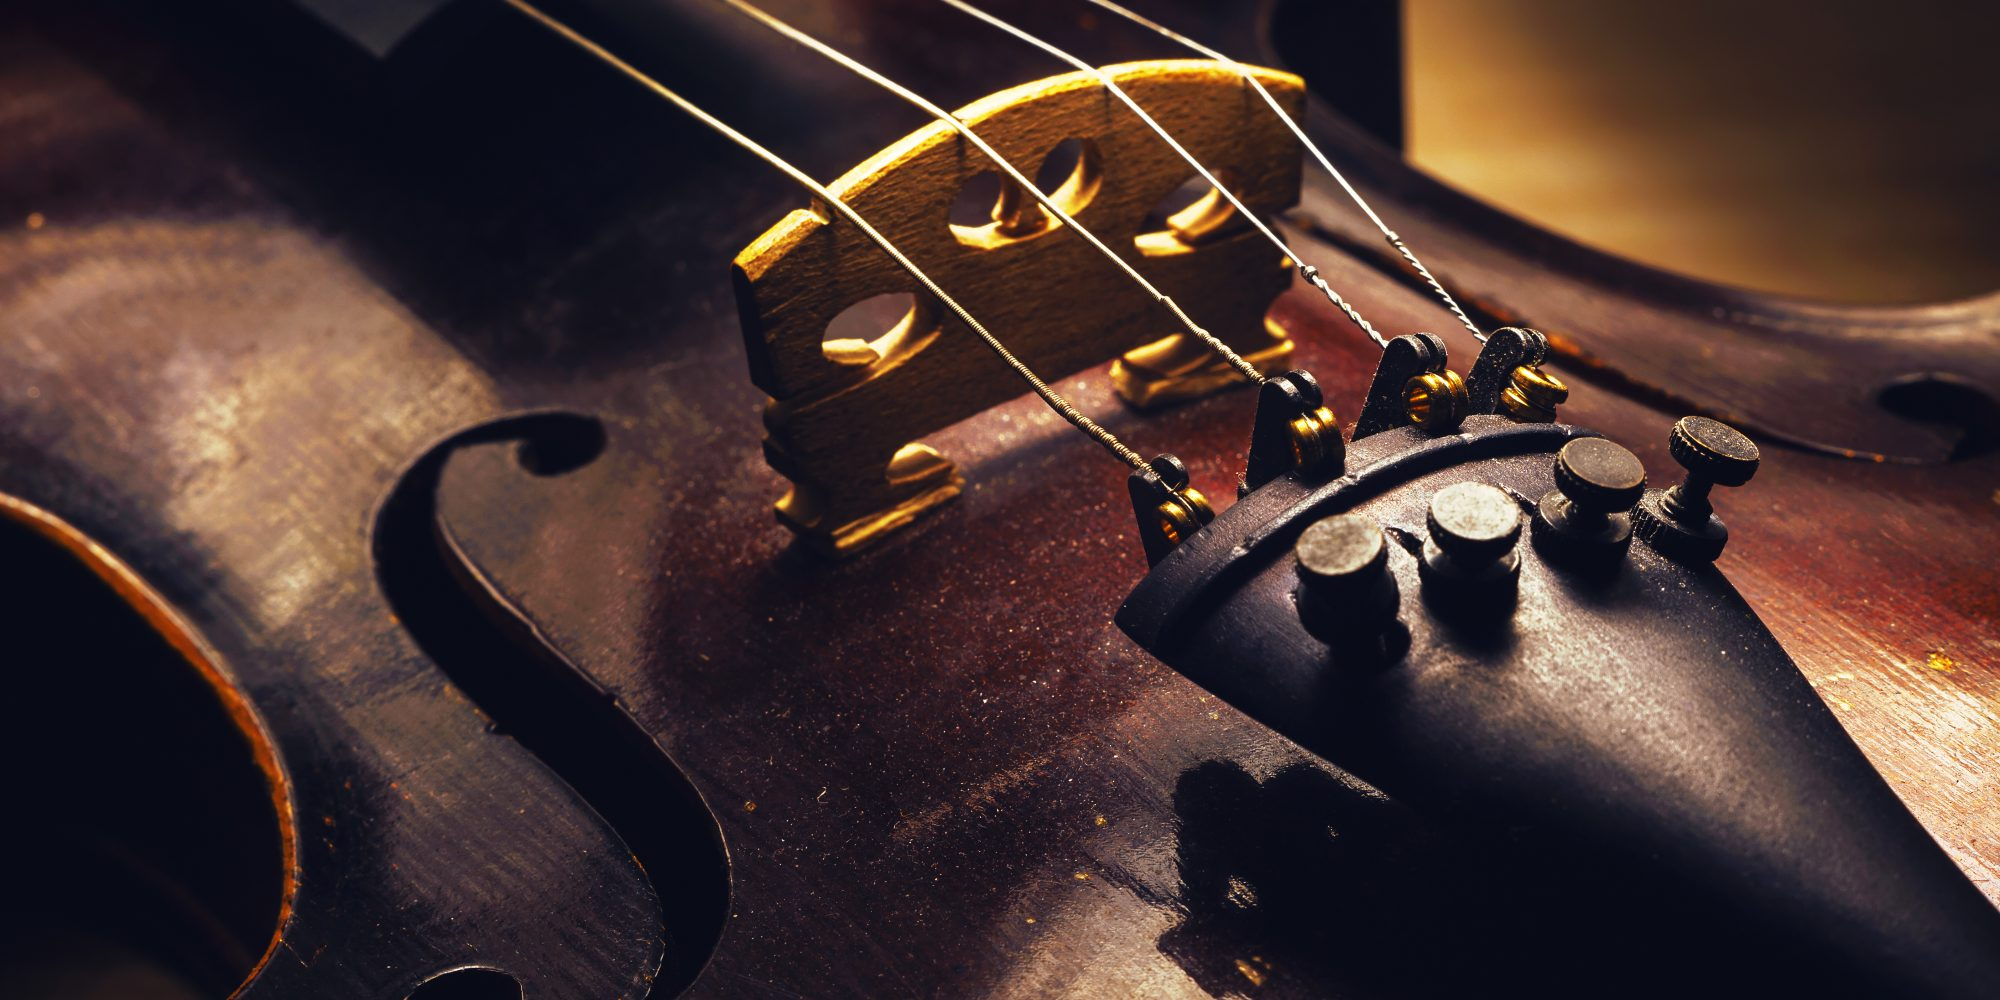 Closeup detail of old wooden violin with four strings